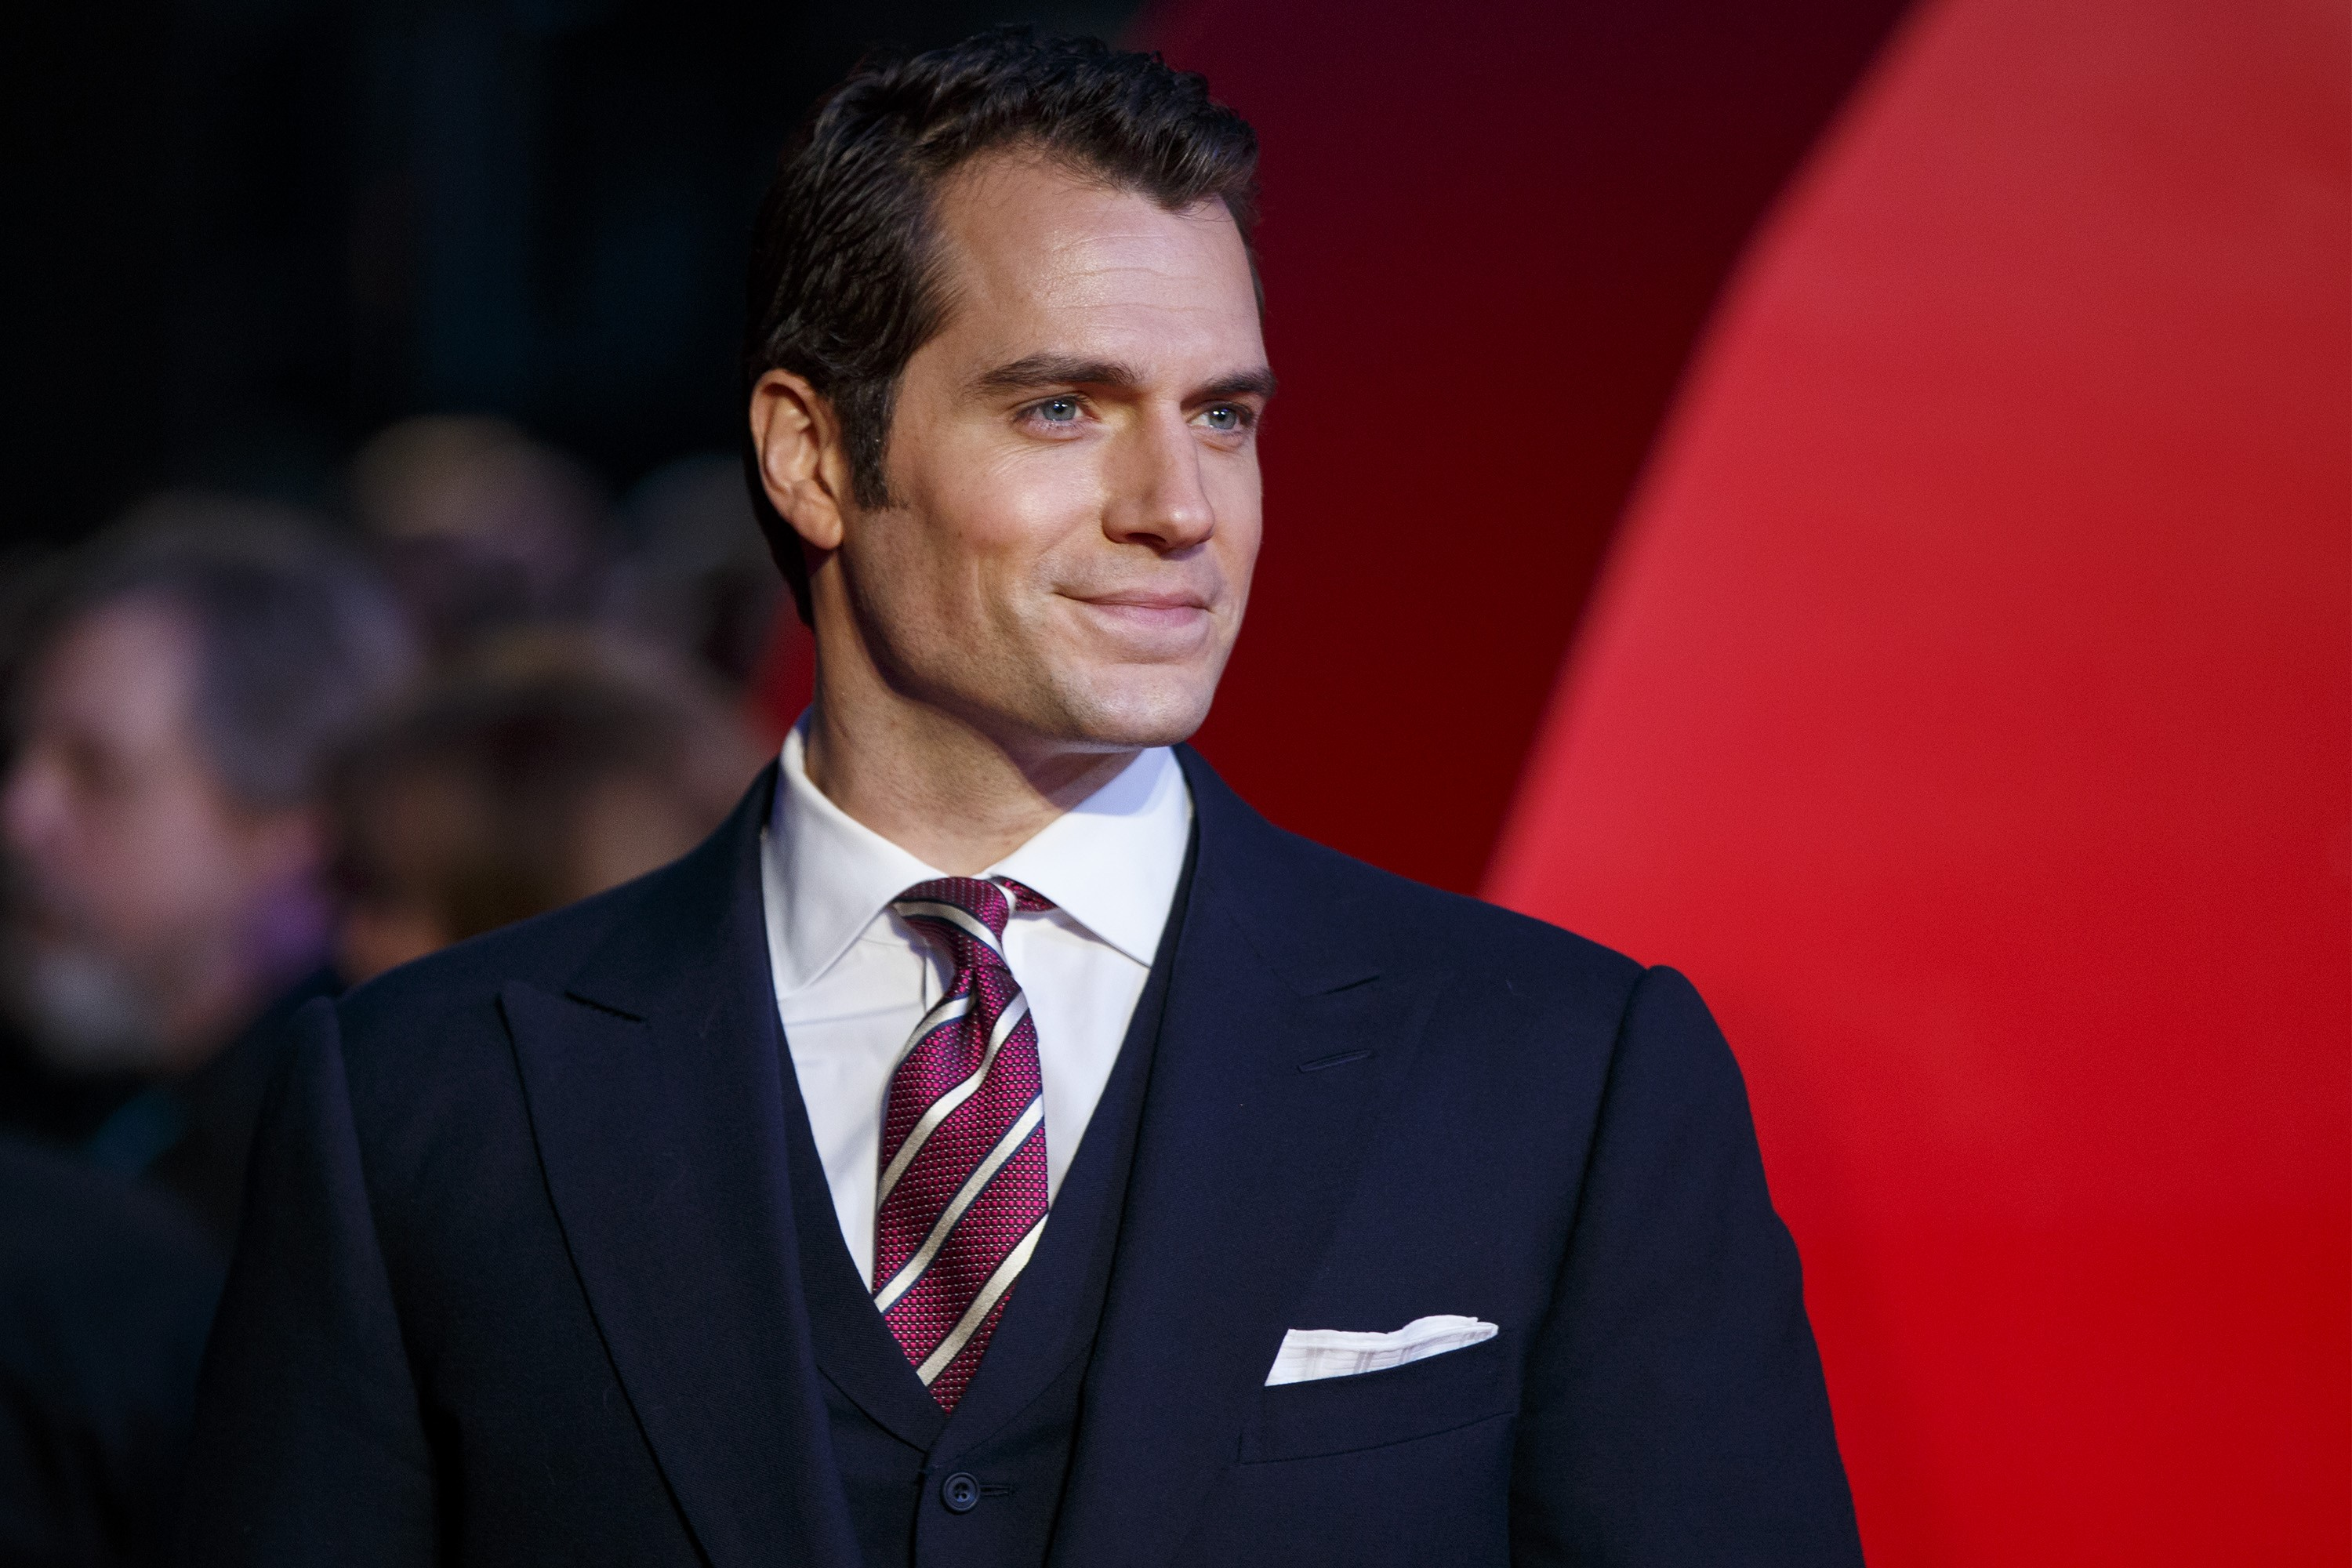 Henry Cavill just accepted a new movie role...over Instagram